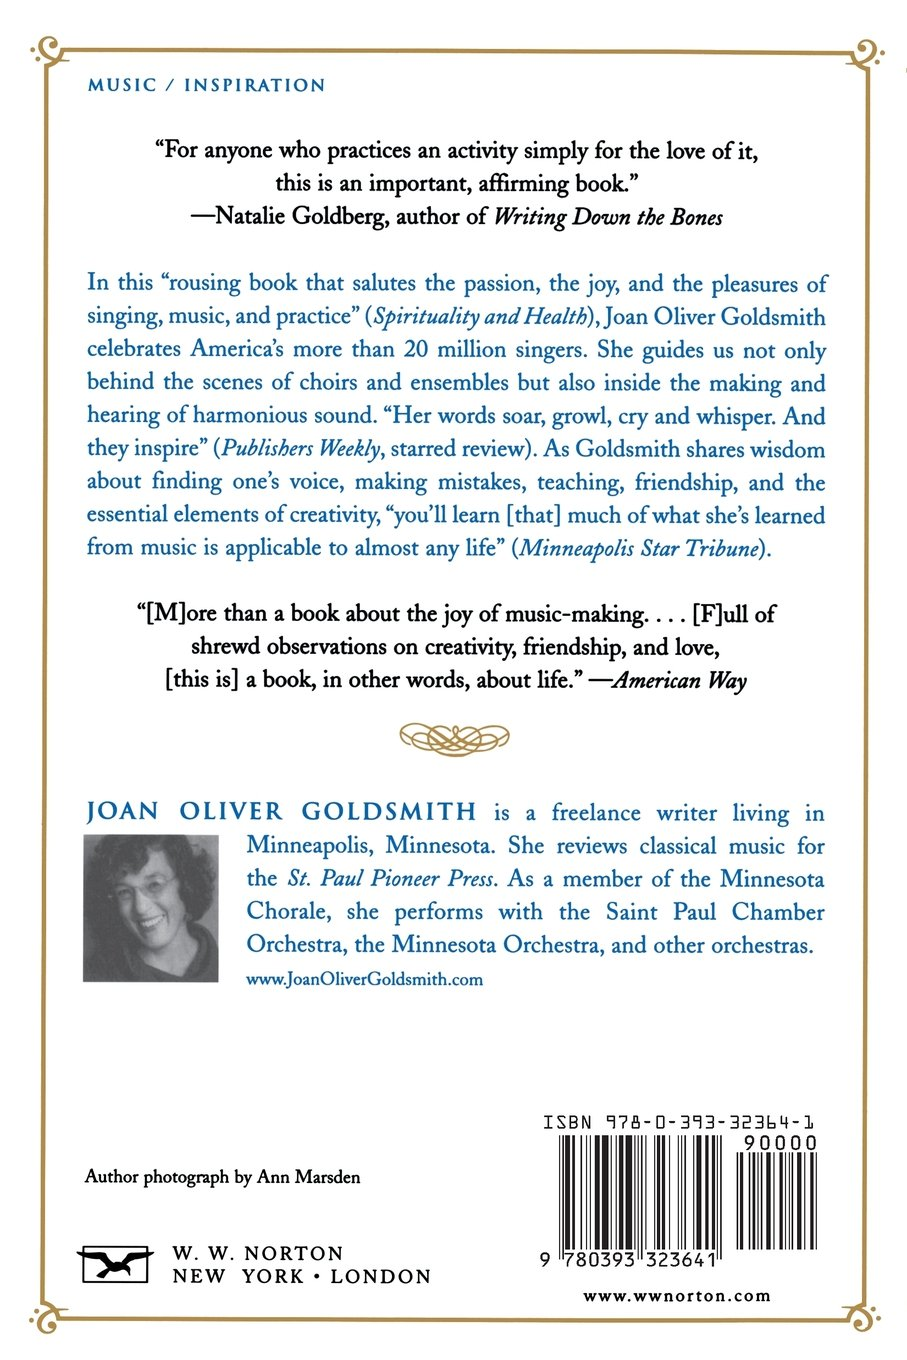 How Can We Keep from Singing: Music and the Passionate Life: Joan Oliver Goldsmith: 9780393323641: Amazon.com: Books